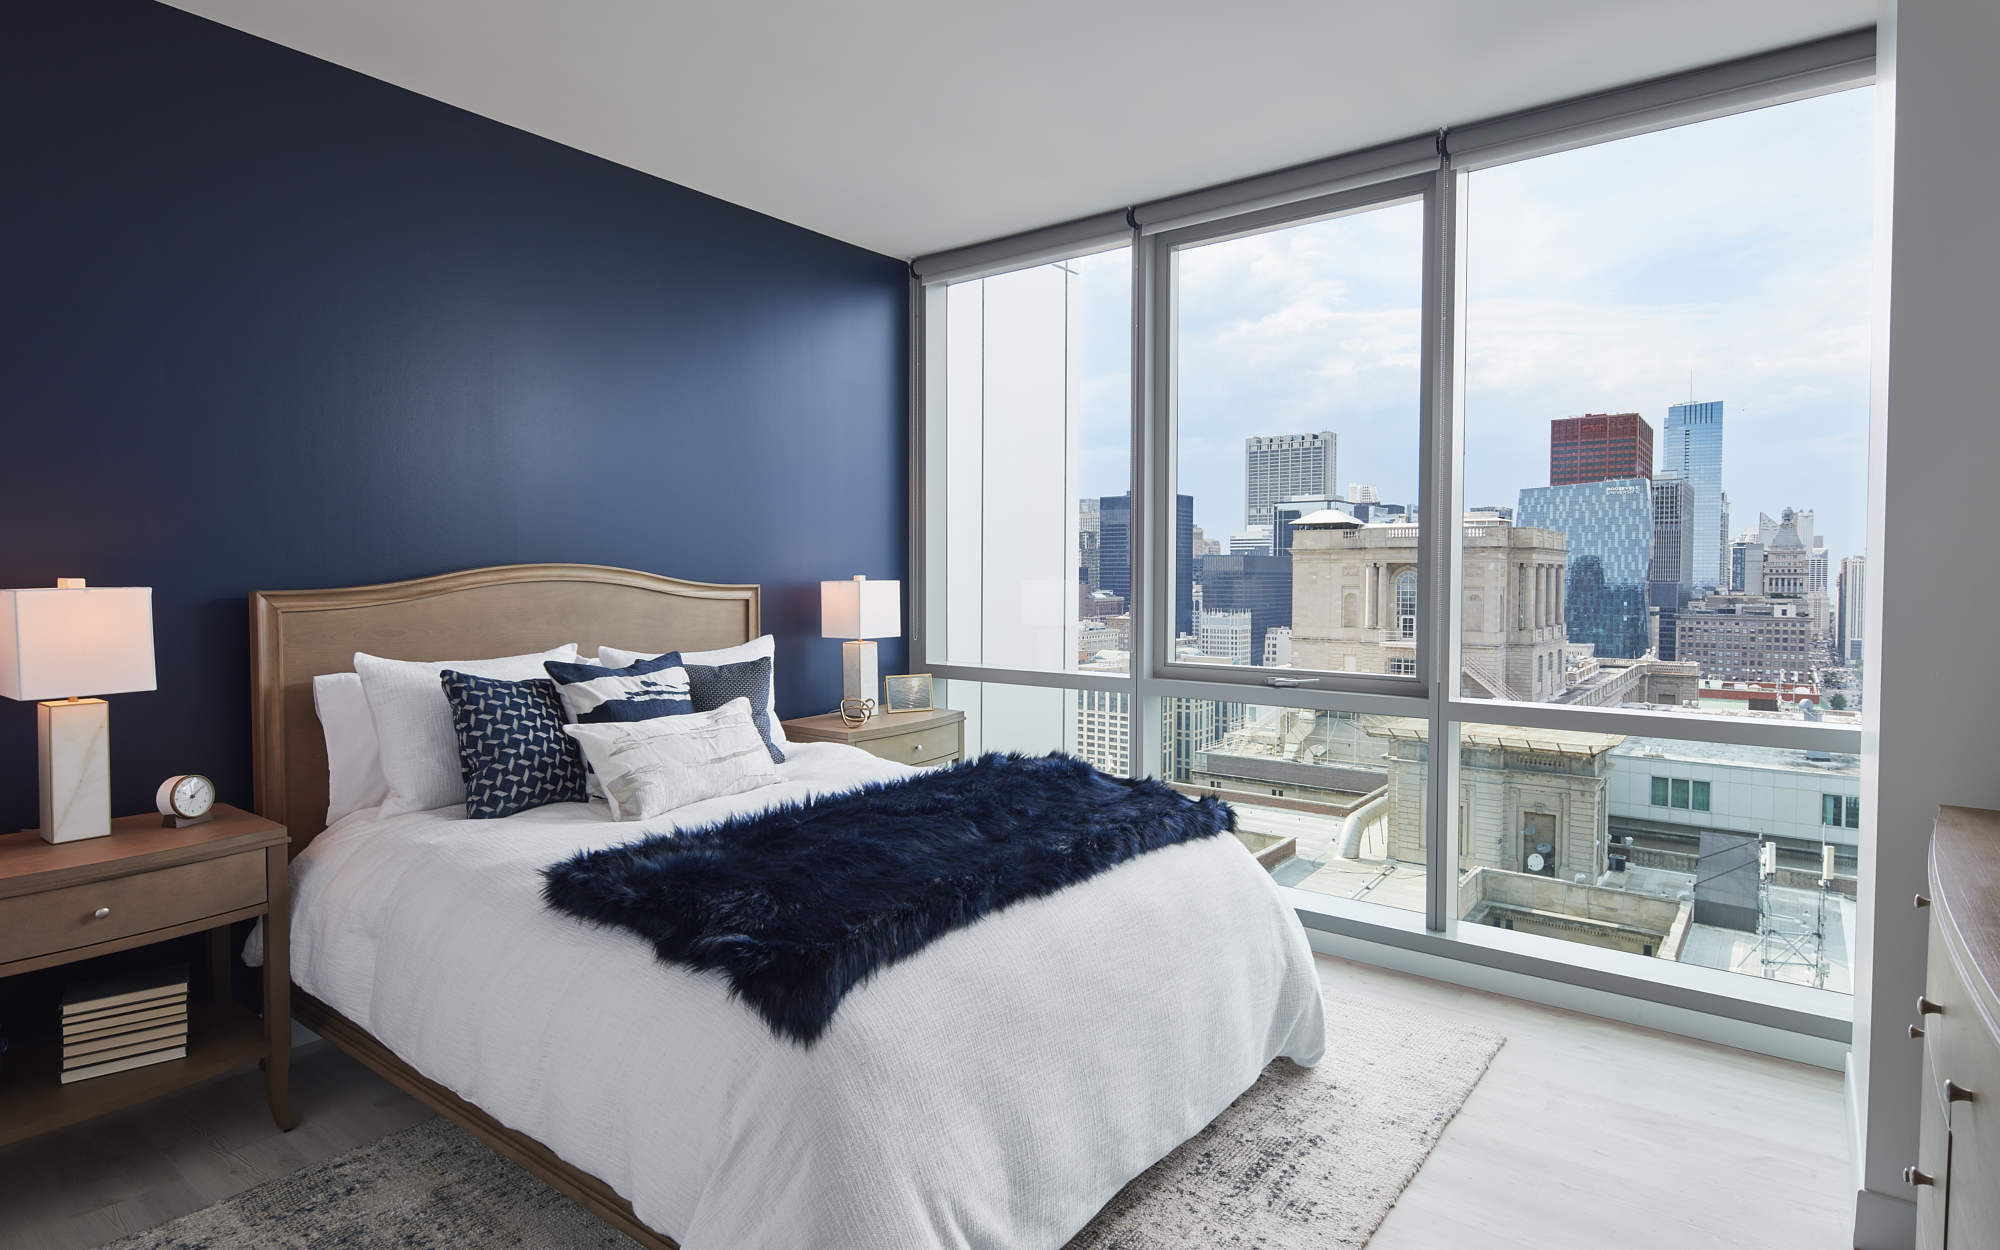 Essex bedroom example 2 open window with city view